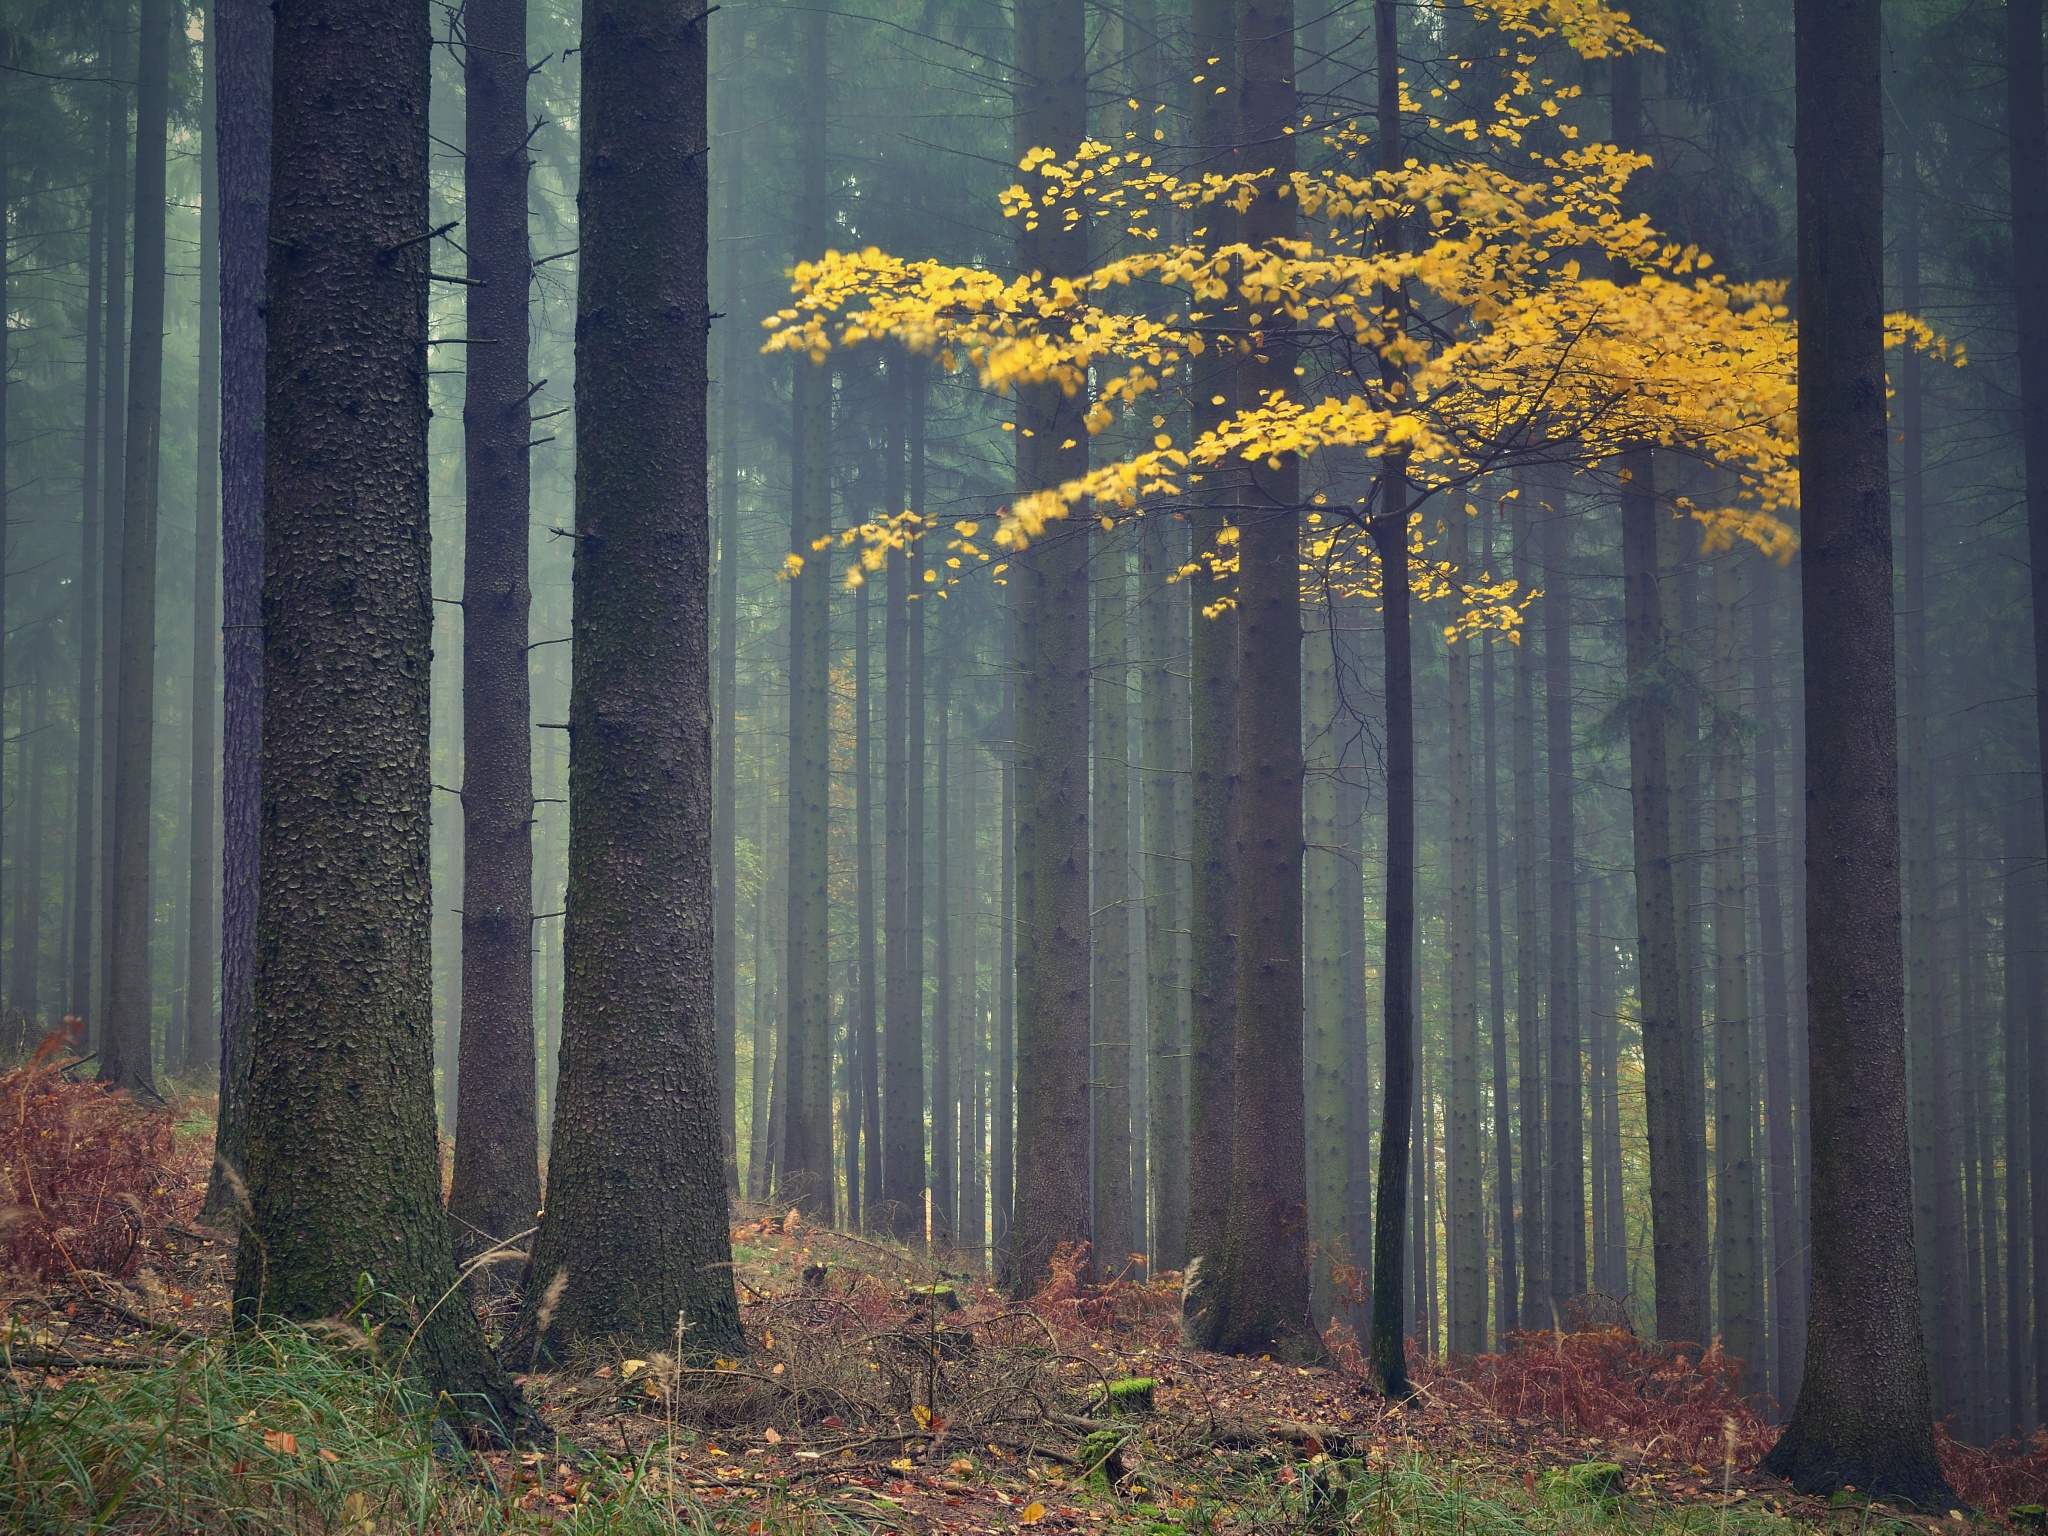 Autumn forest by robertjanda12